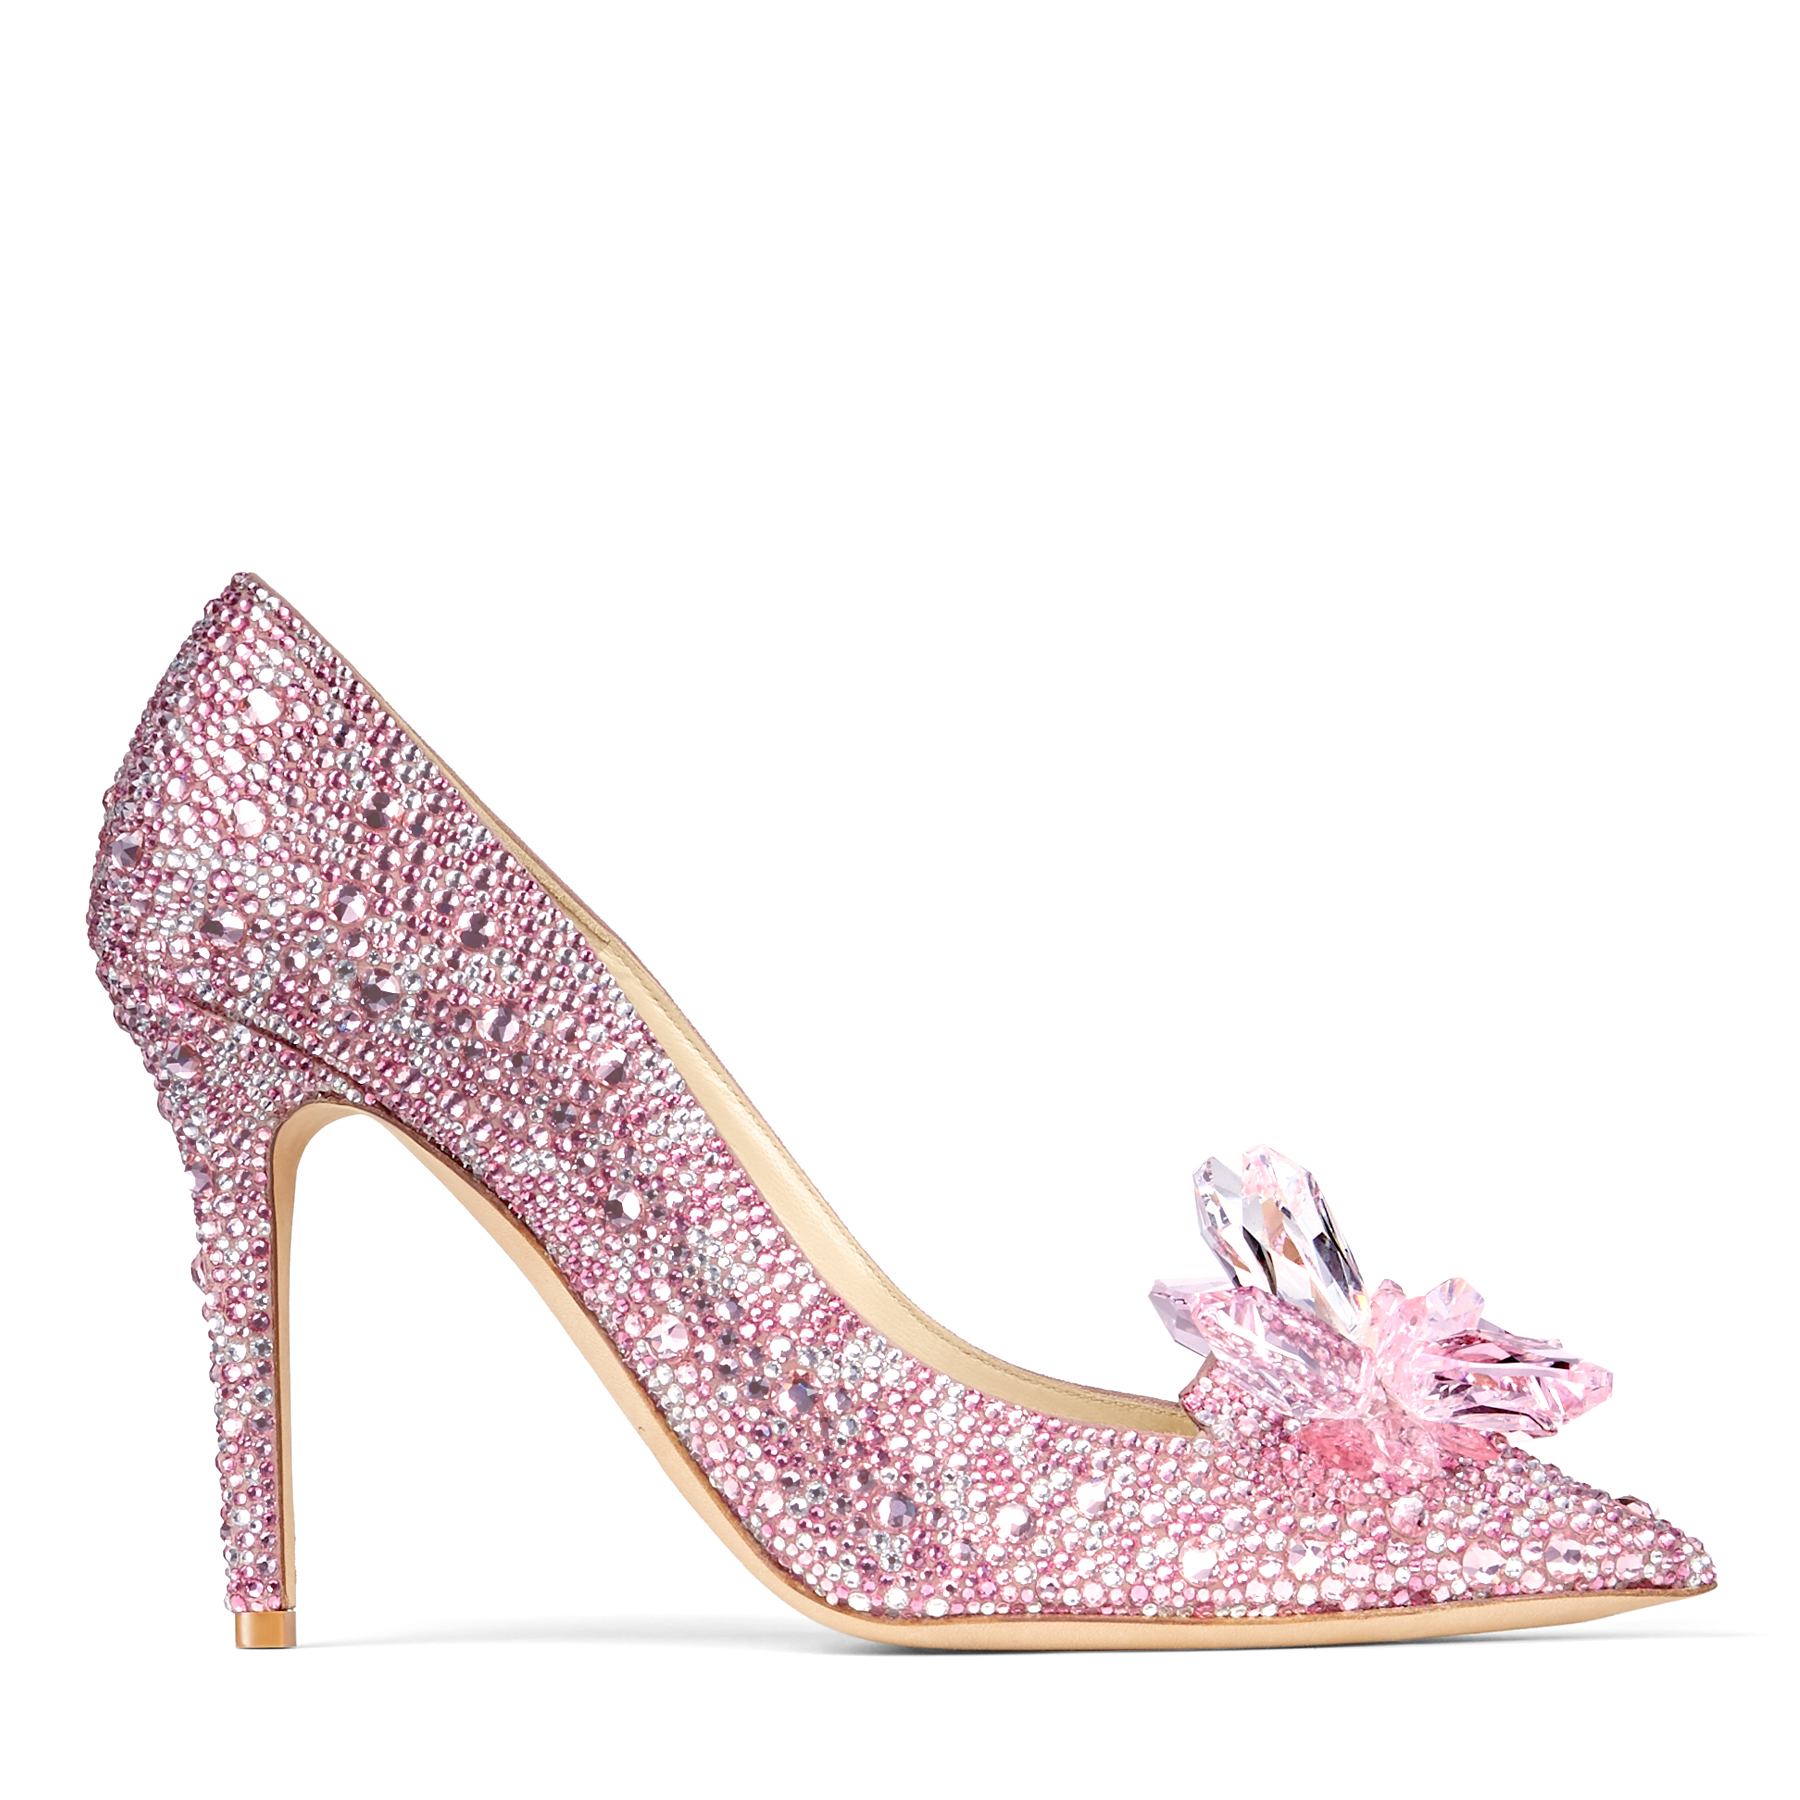 Layered from toe to heel in luxurious Swarovski crystals, the Avril is a shoe of fairy tales. Employing the classic pointy toe pump and a dramatic spike heel, each exquisite crystal has been hot fixed before mounting for longevity. Swarovski crystals call for a special occasion, live your Cinderella moment and showcase these rose mix heels at a high society dinner or to the party of the year.